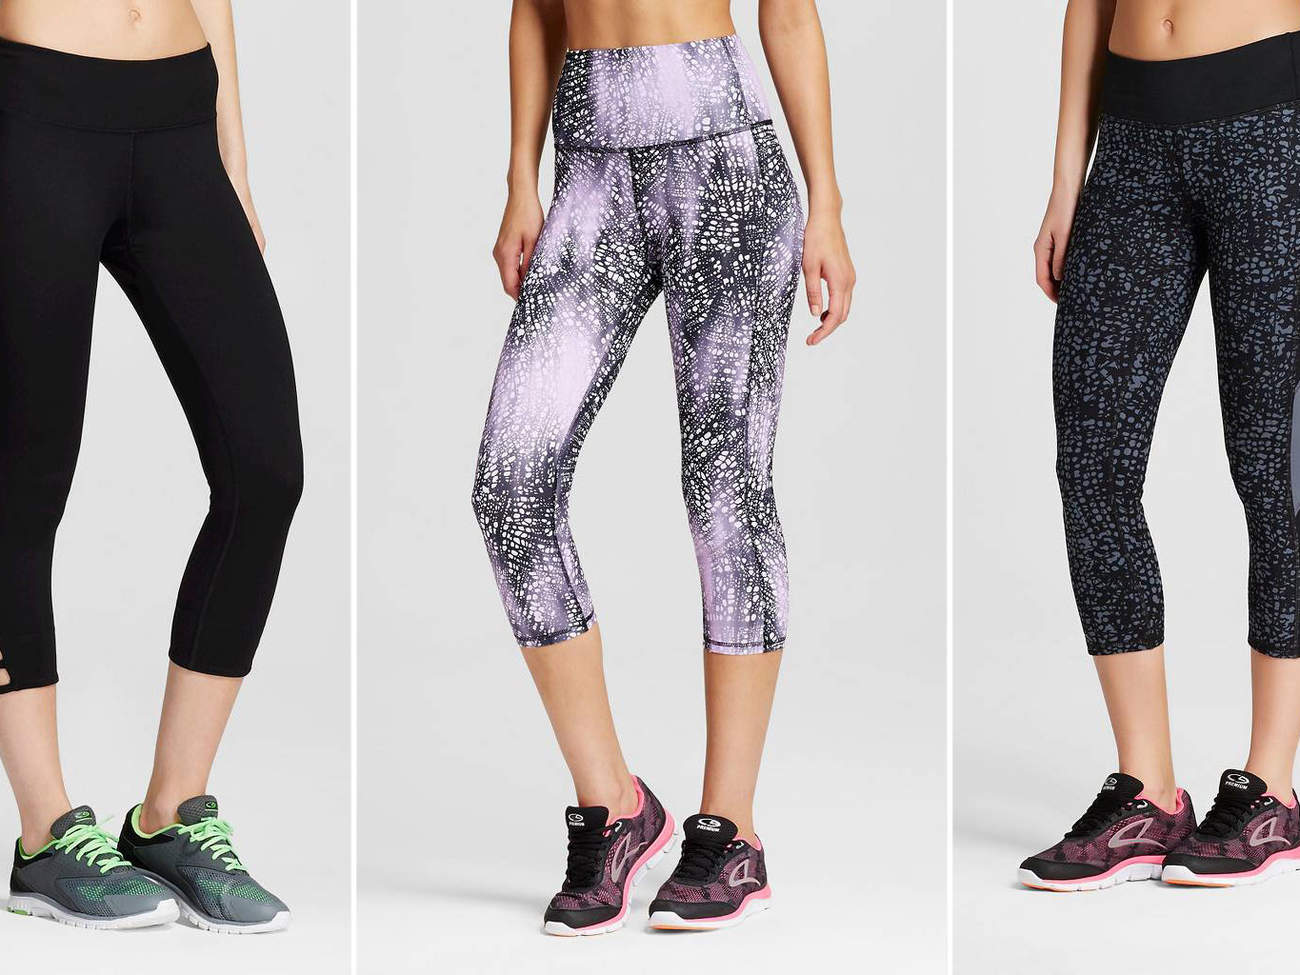 616acbbae11079 7 High-Performance Workout Leggings You Can Buy at Target